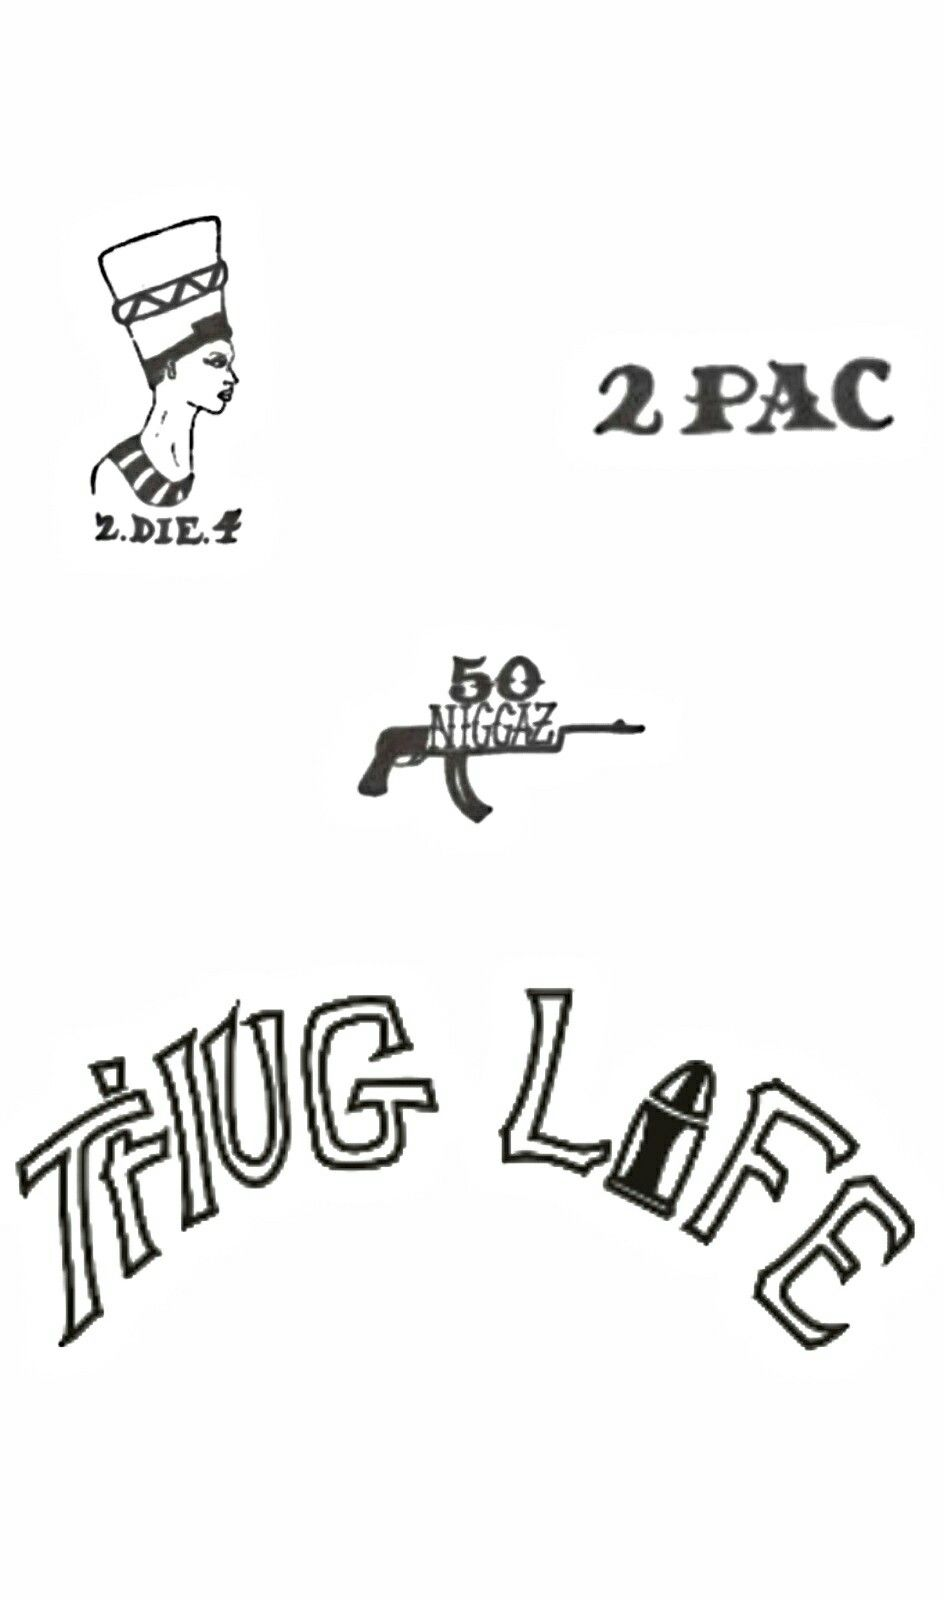 50 Niggaz Tupac vinyl decal sticker for Car//Truck Window tablet tattoo 2pac ak47